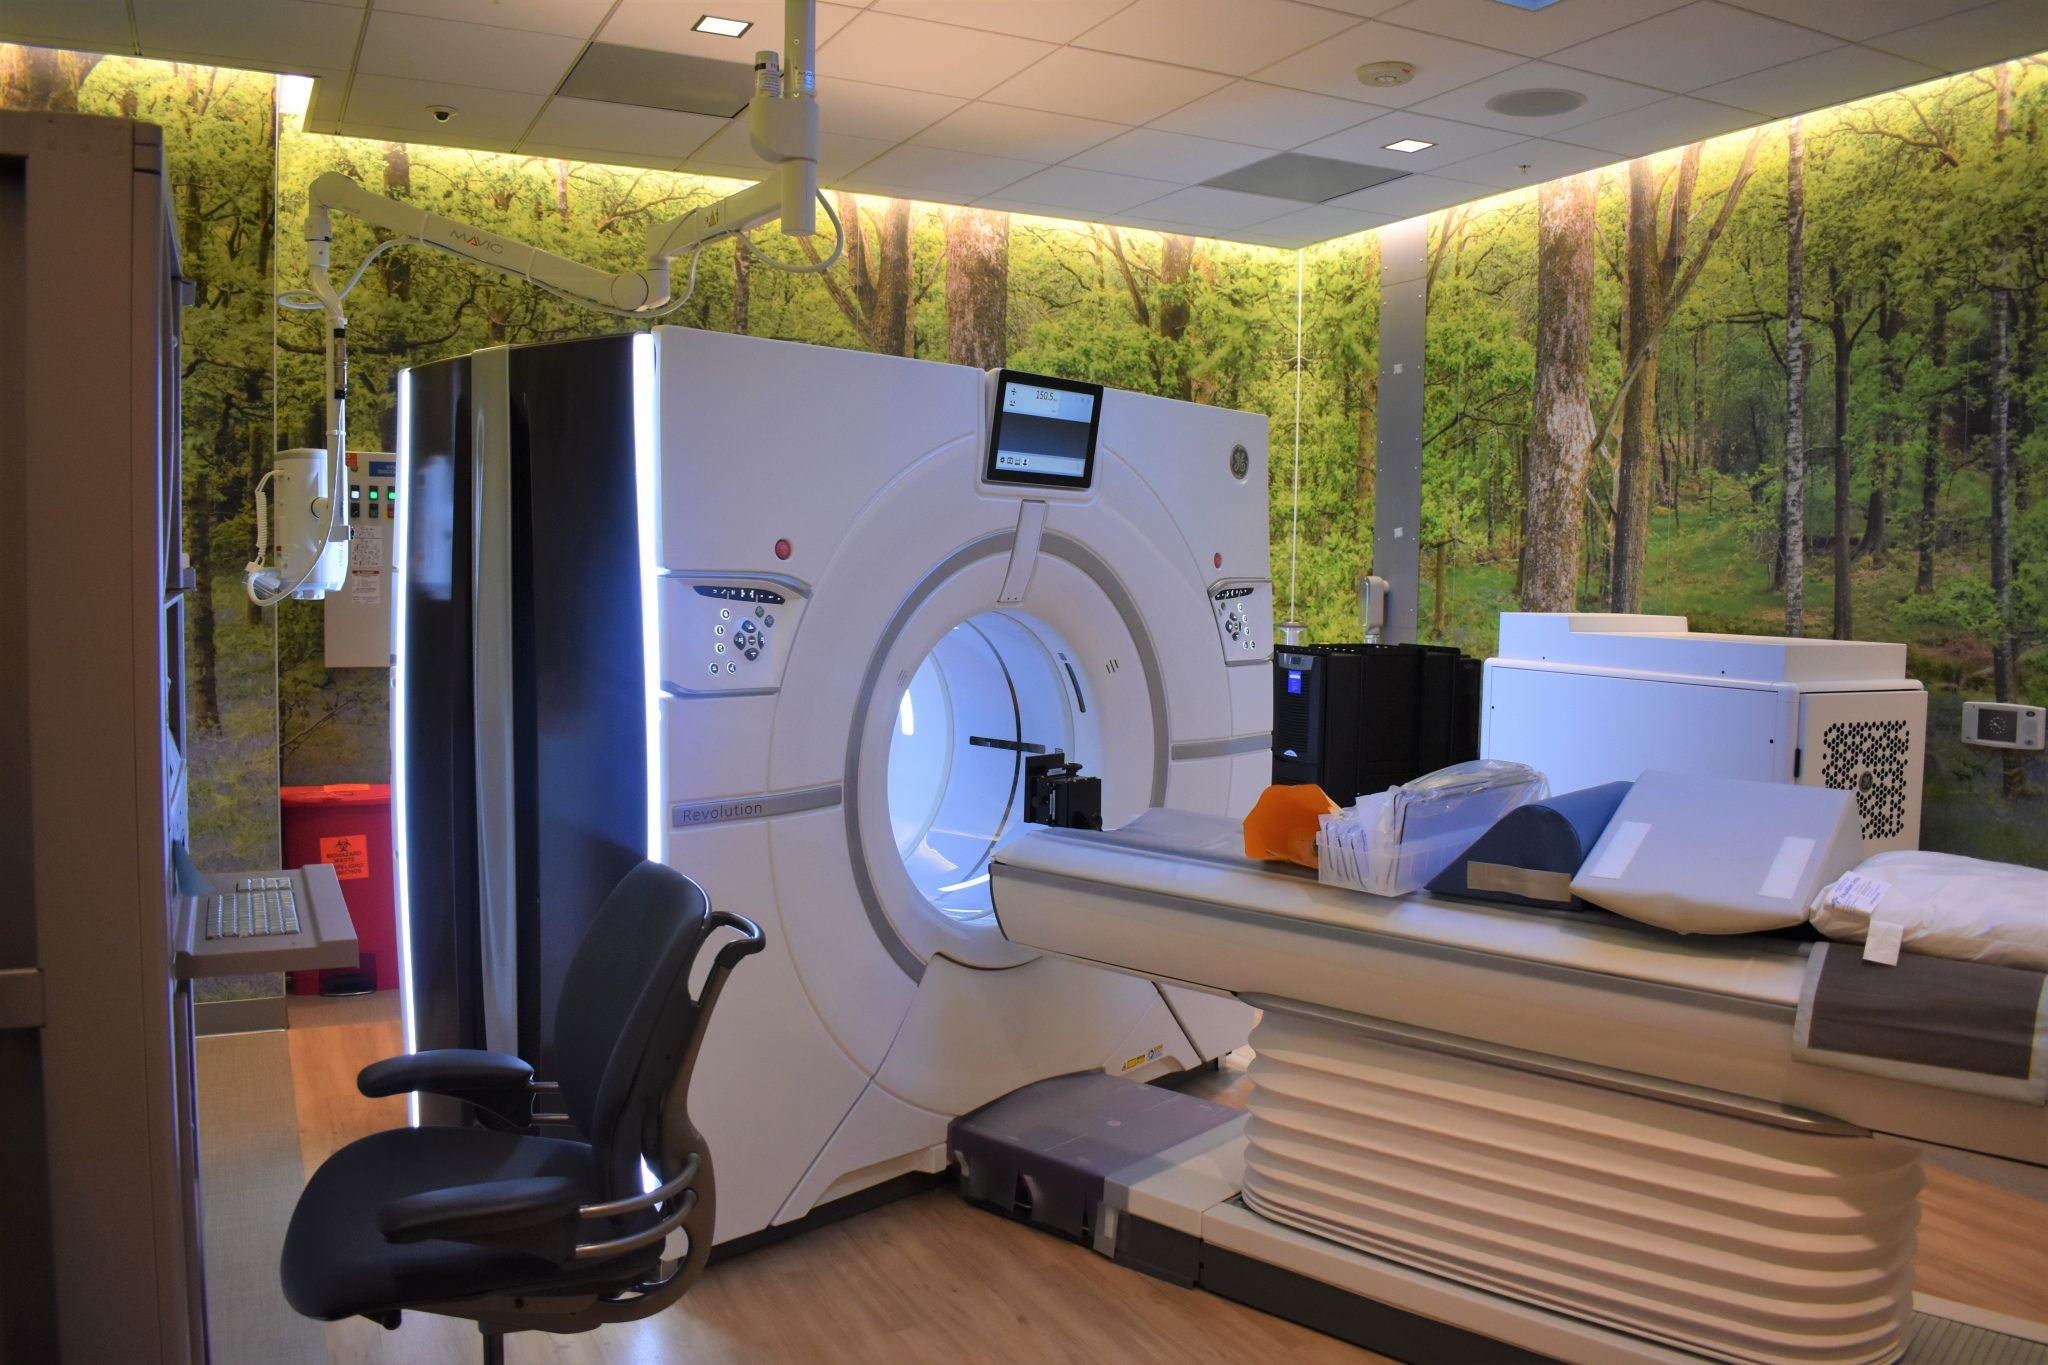 Sutter Health CPMC - Vantage Technology Consulting Group